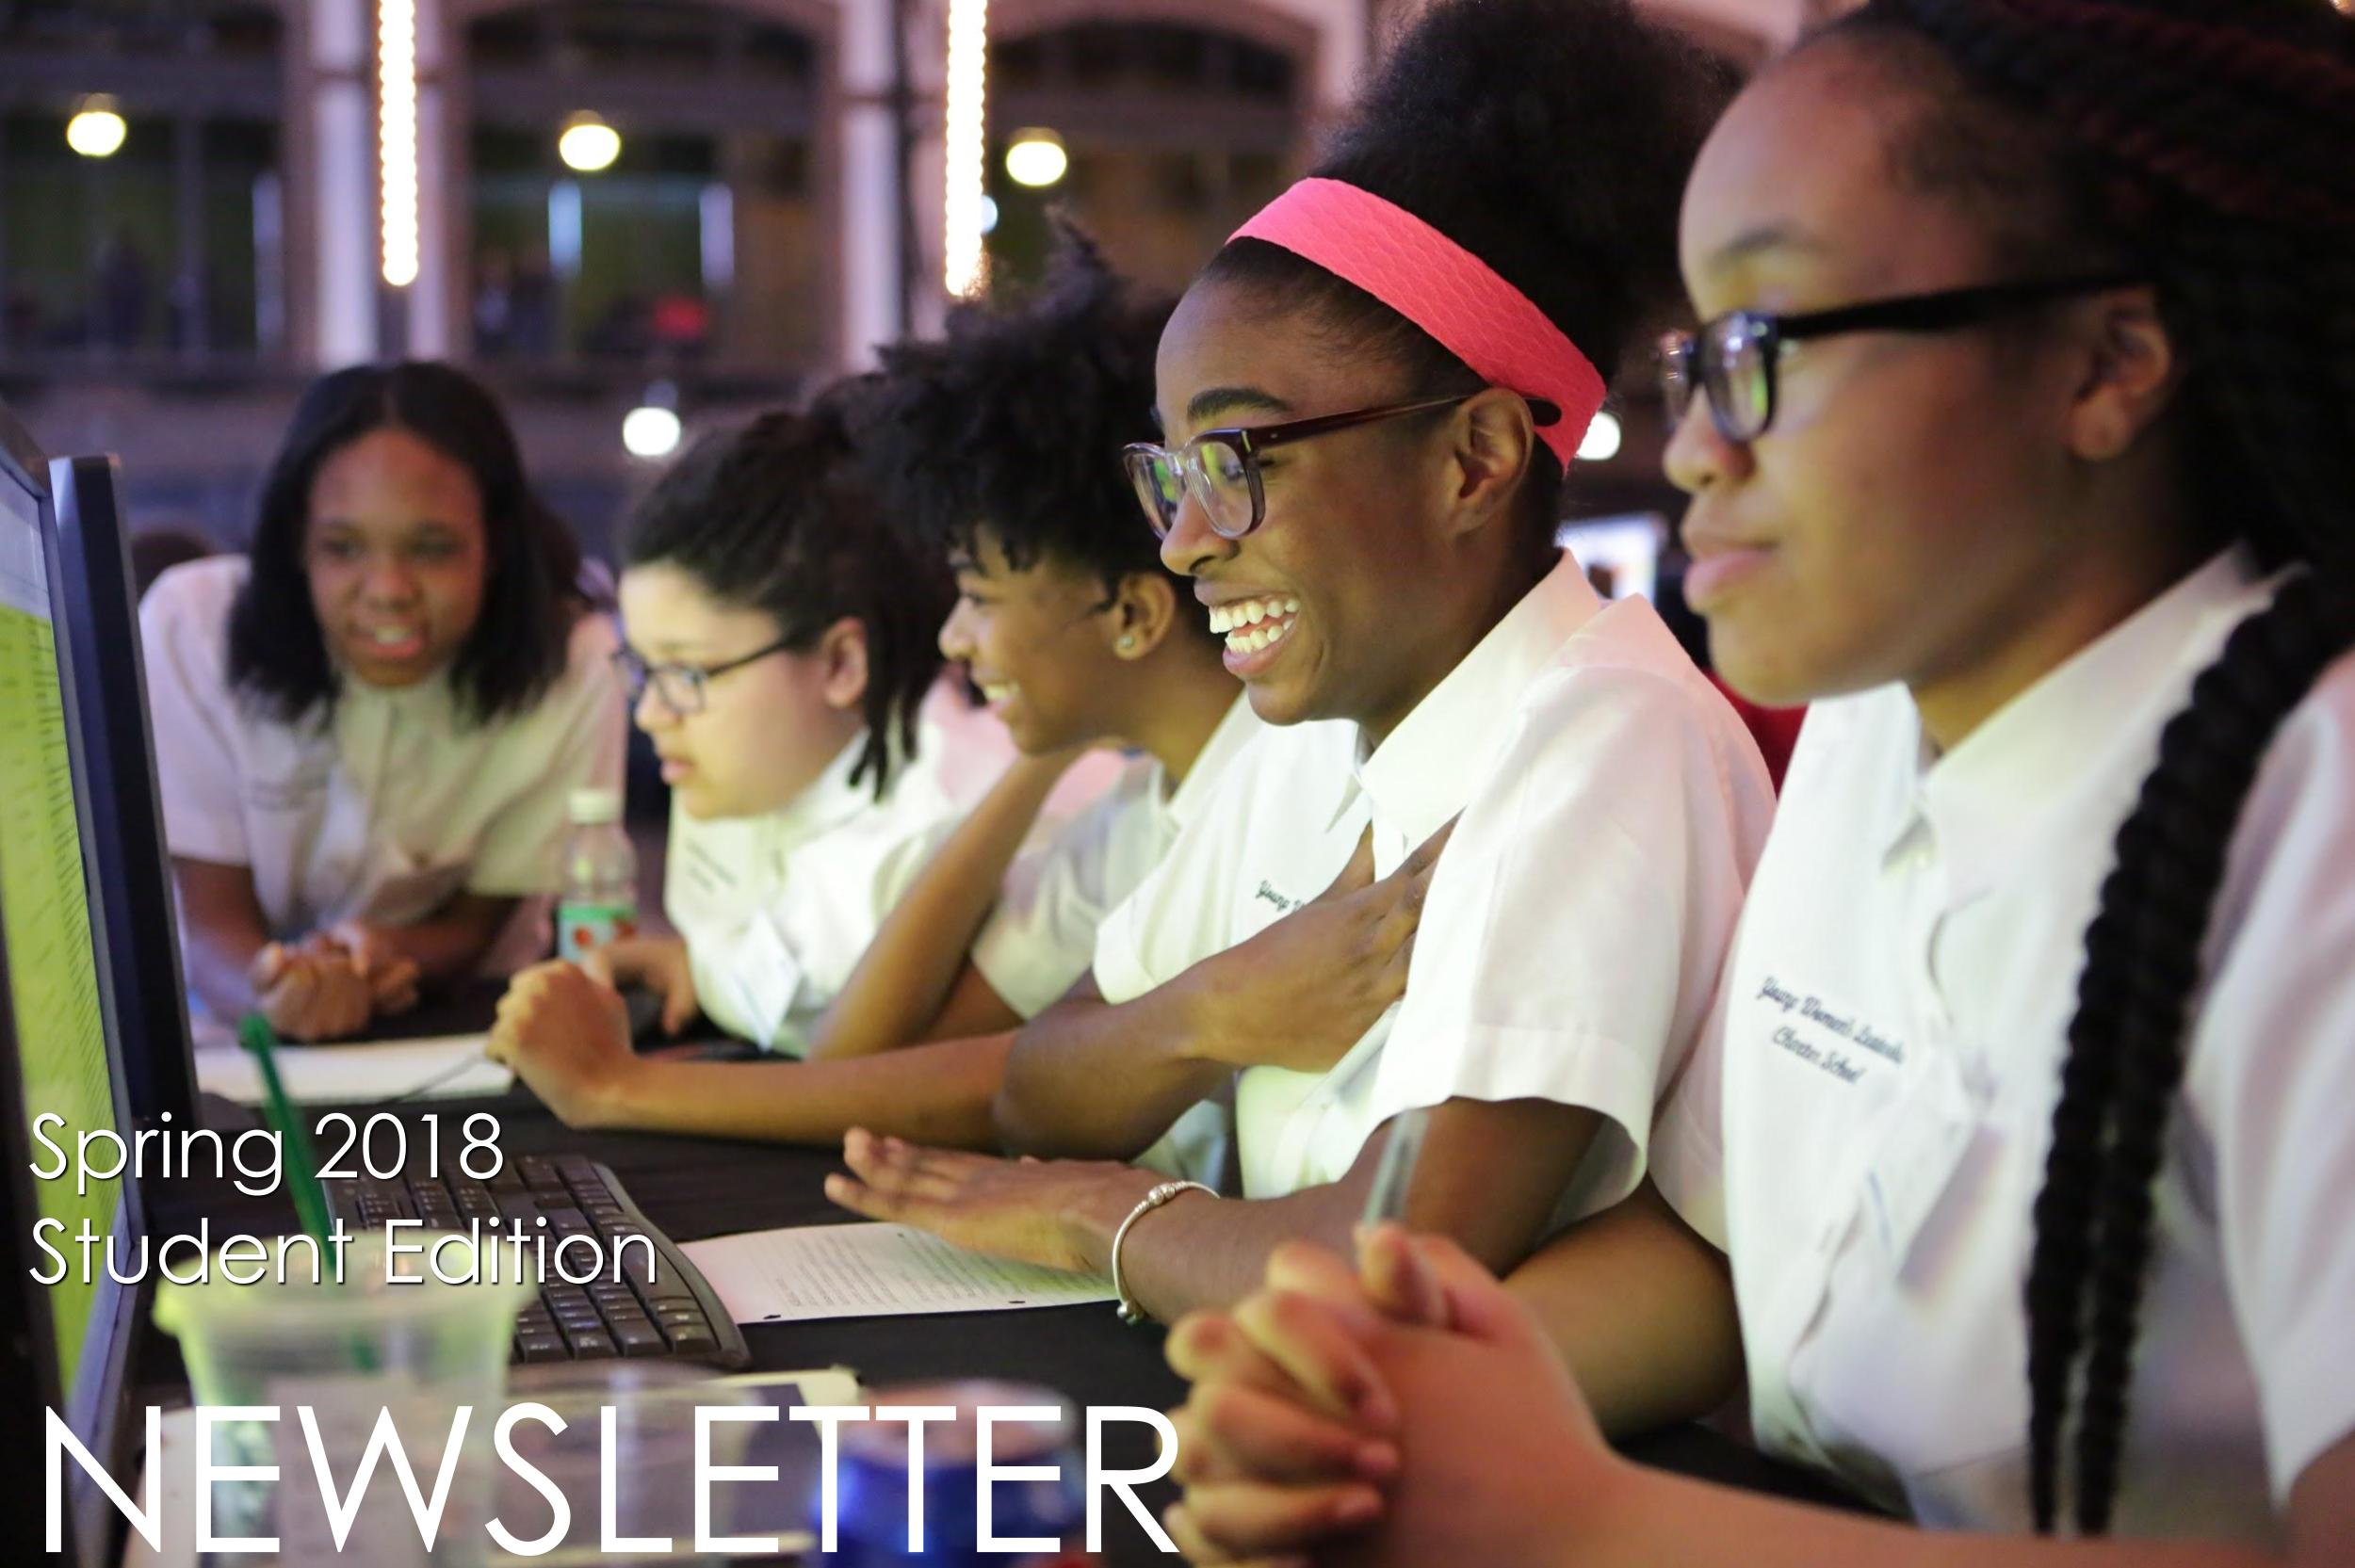 Financial education newsletter for high school students